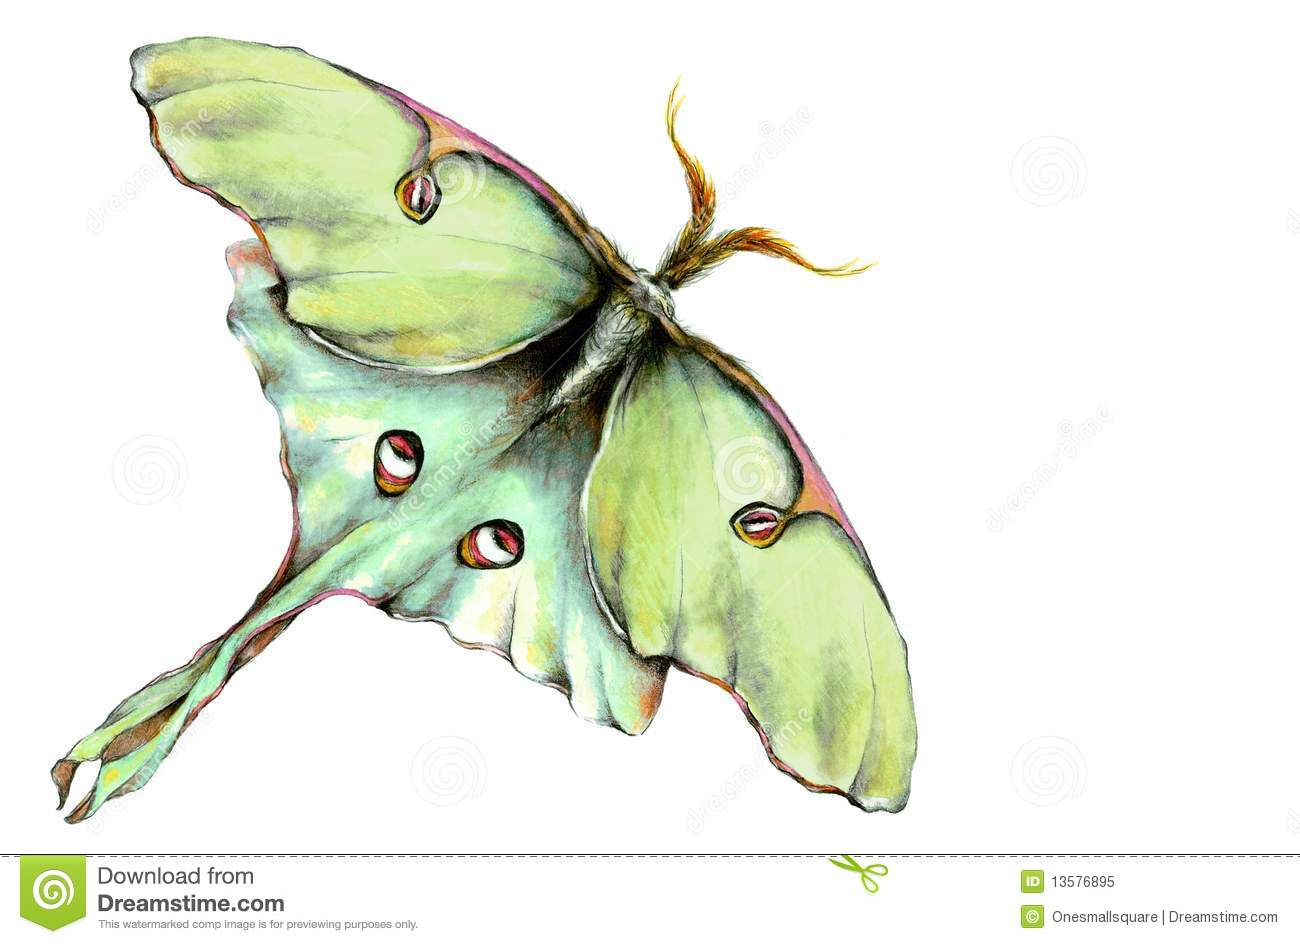 Luna moth scientific illustration - photo#10